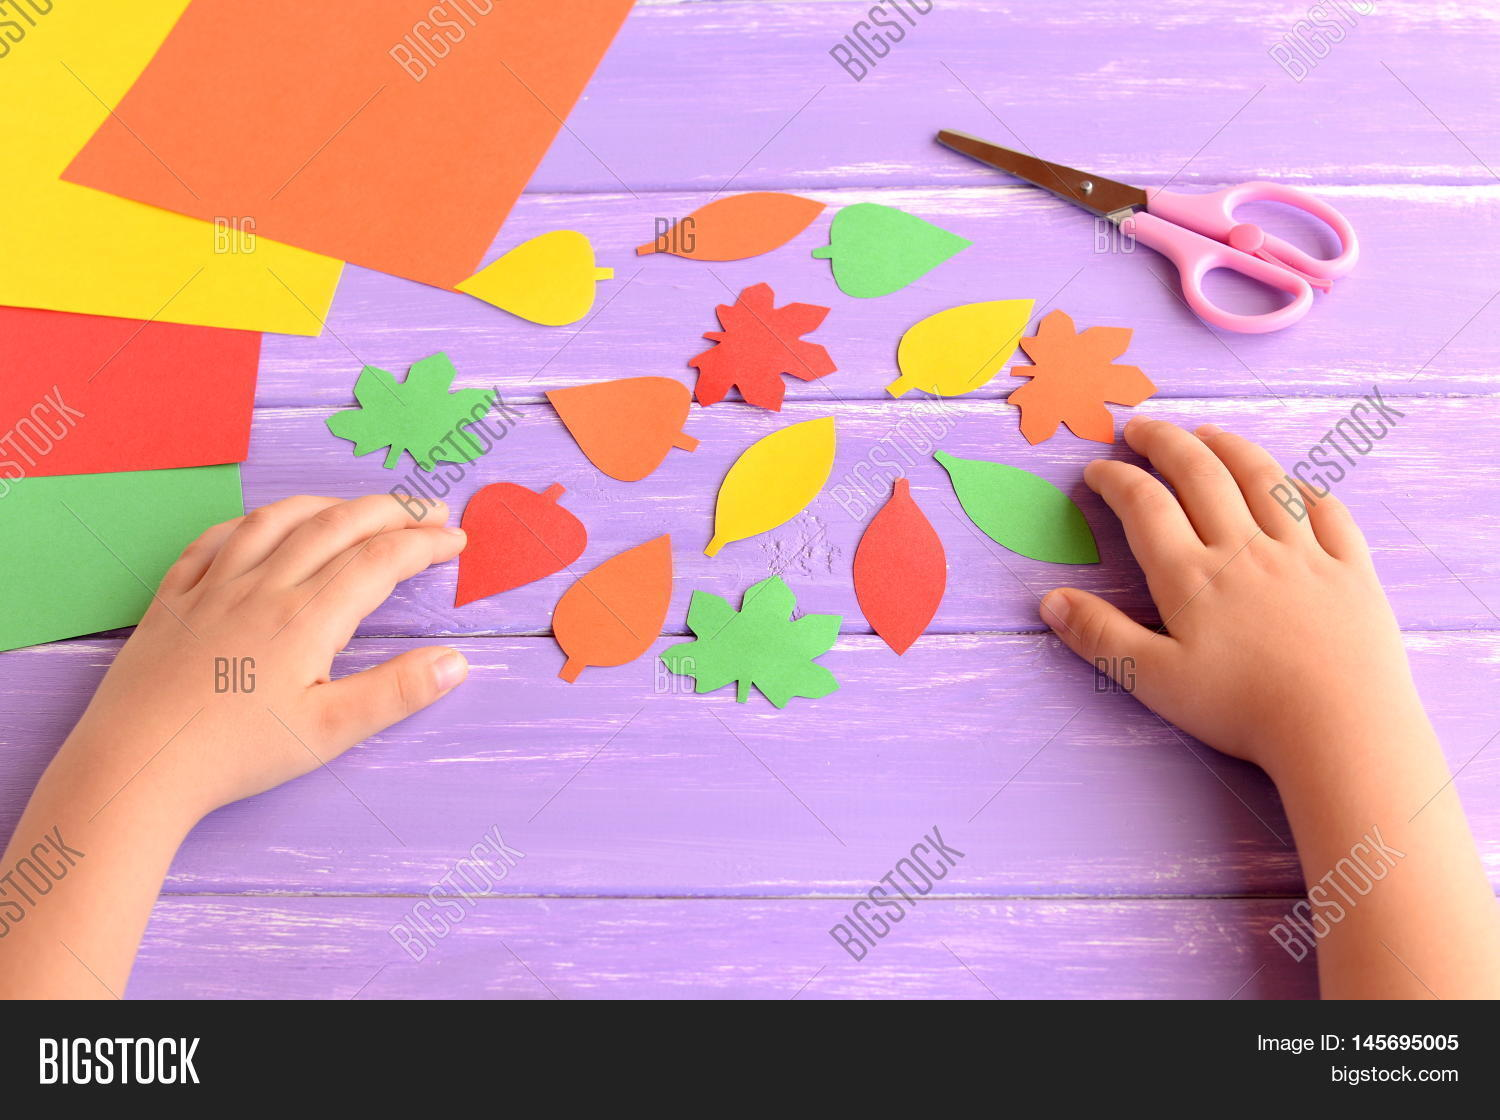 Child Cut Out Colored Image Amp Photo Free Trial